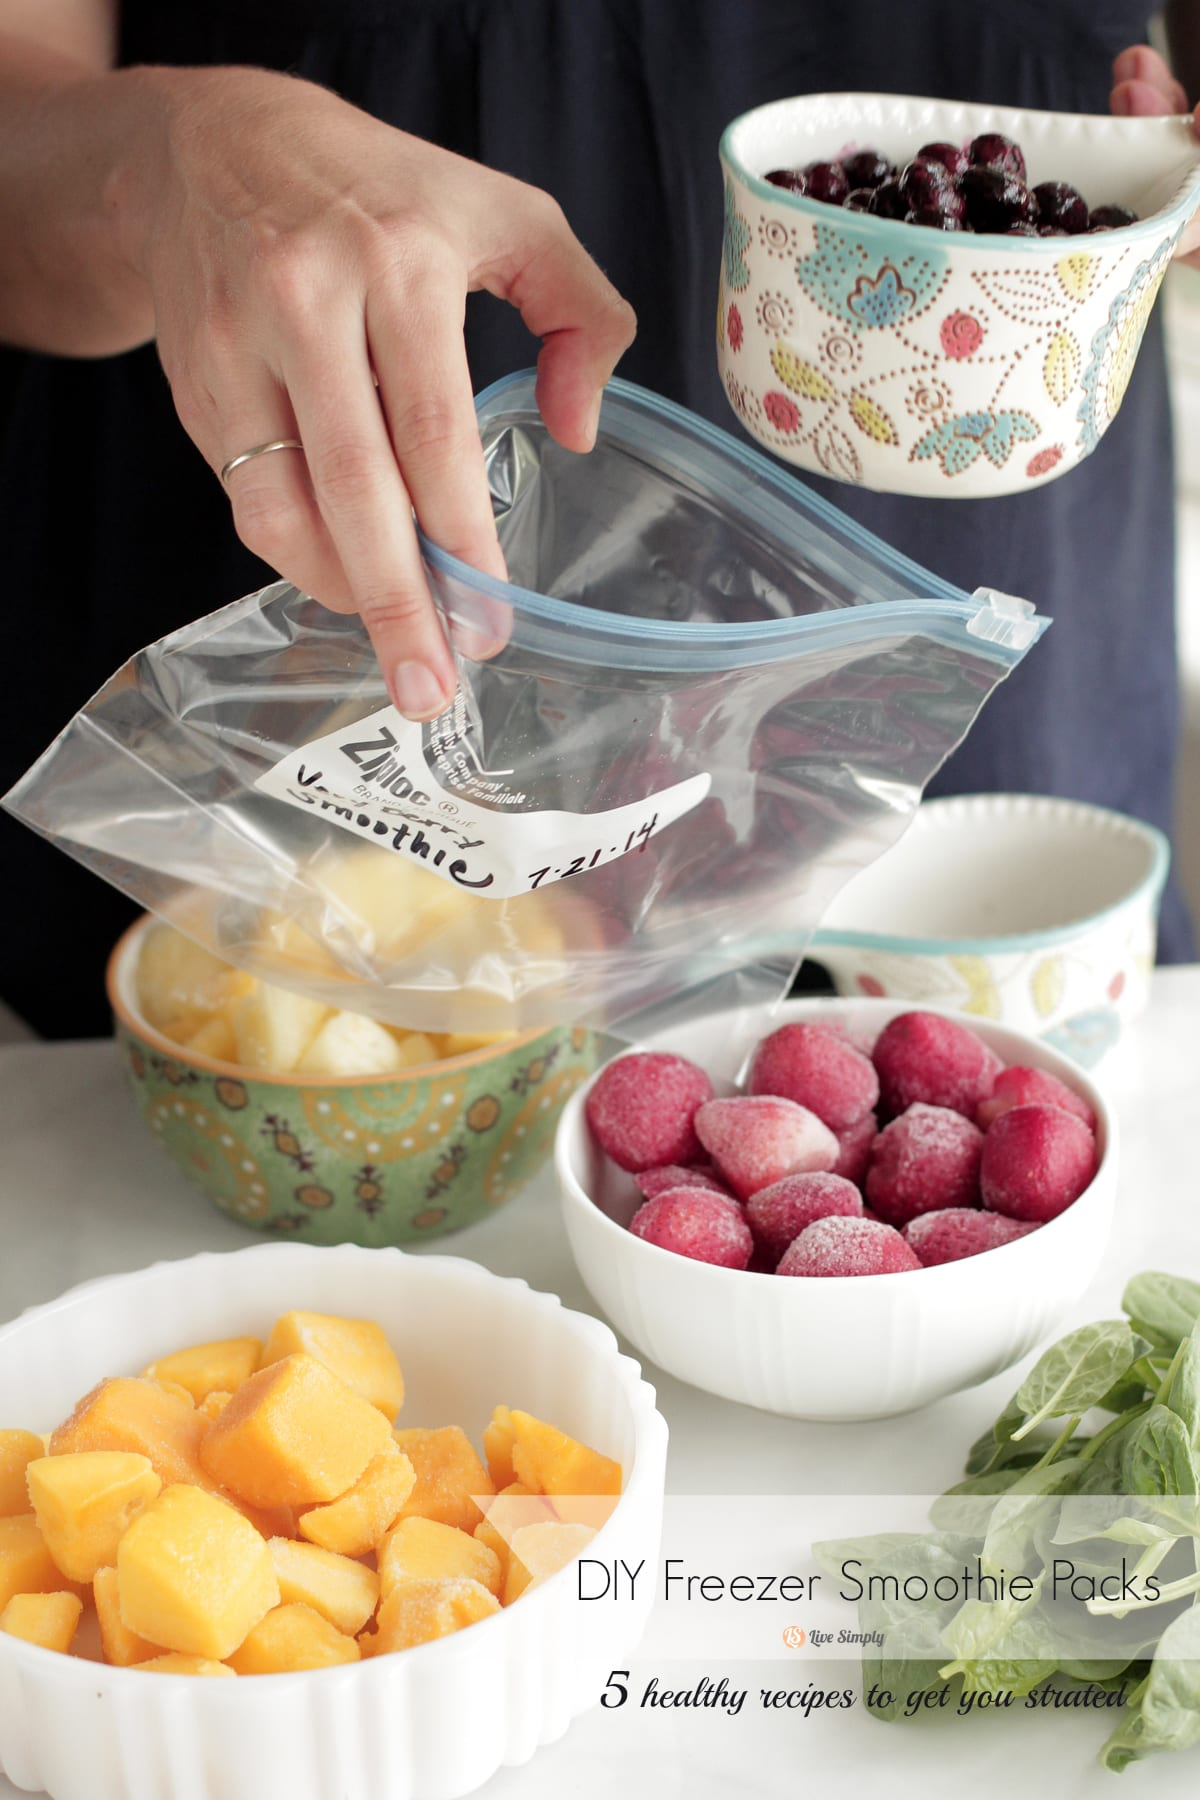 Diy freezer smoothie packs 5 recipes to get you started live simply diy freezer smoothie packs and smoothie recipes save money and time with homemade freezer packs solutioingenieria Choice Image